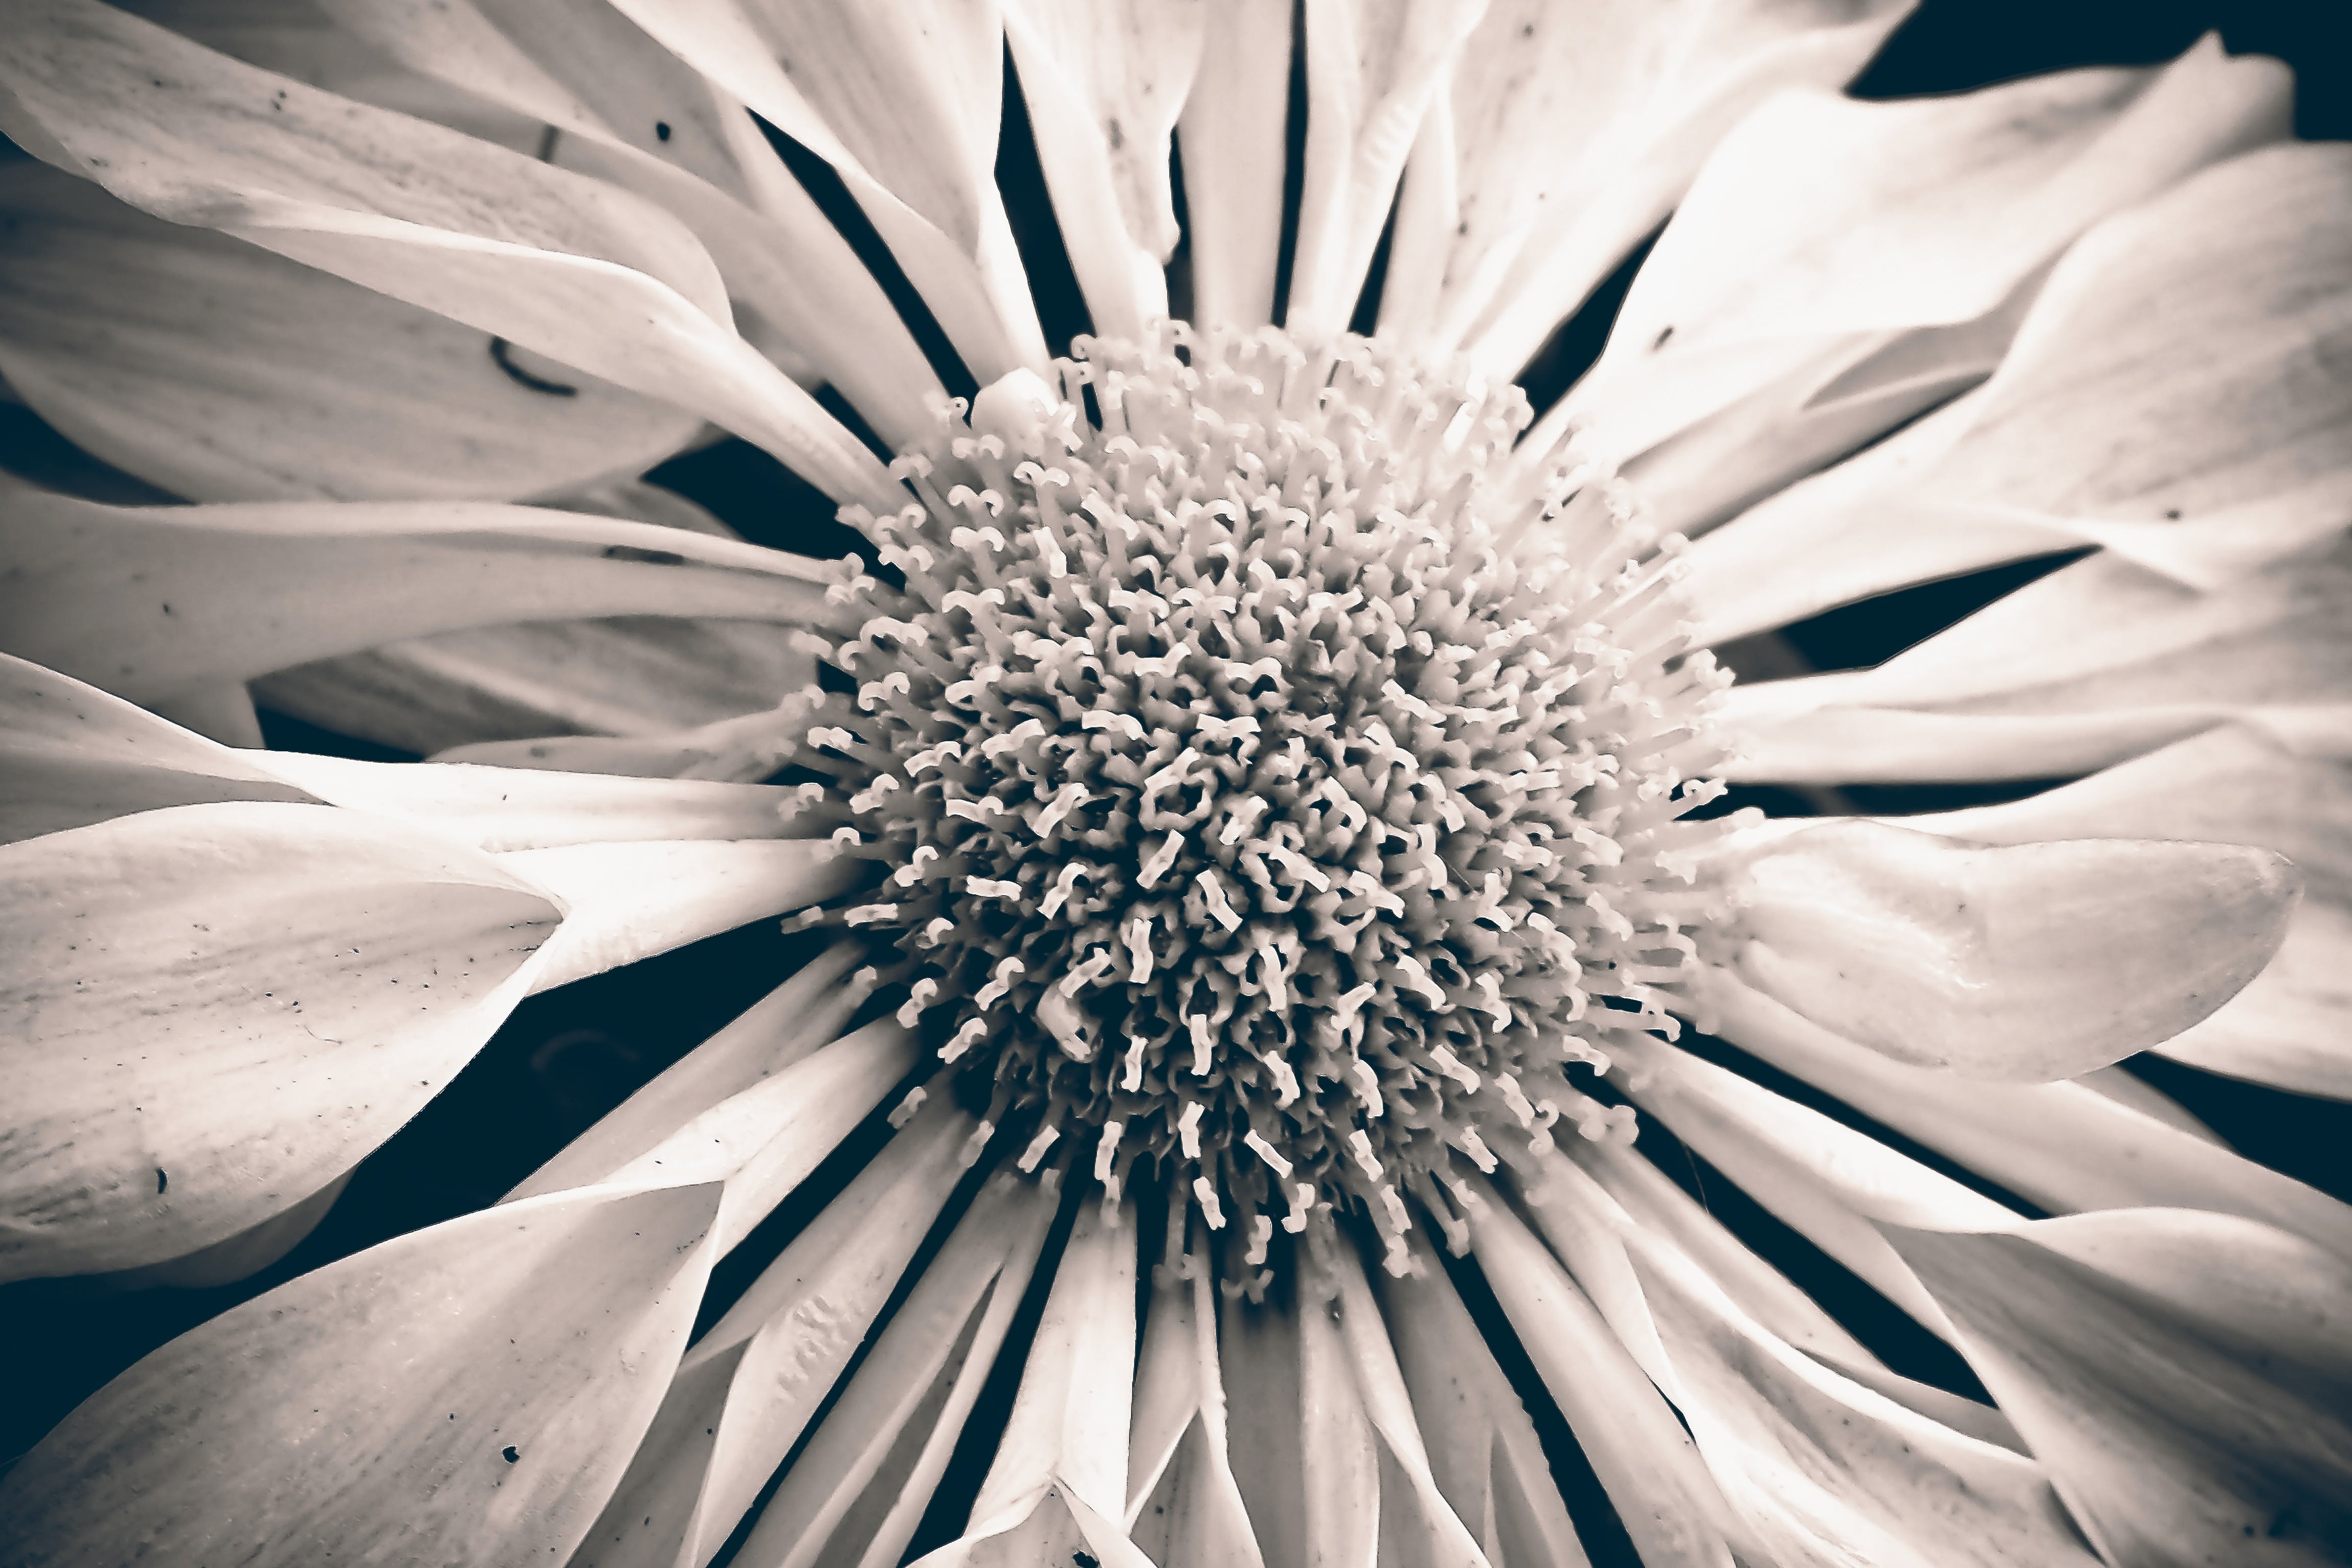 Greyscale Photo of Spoon Daisy